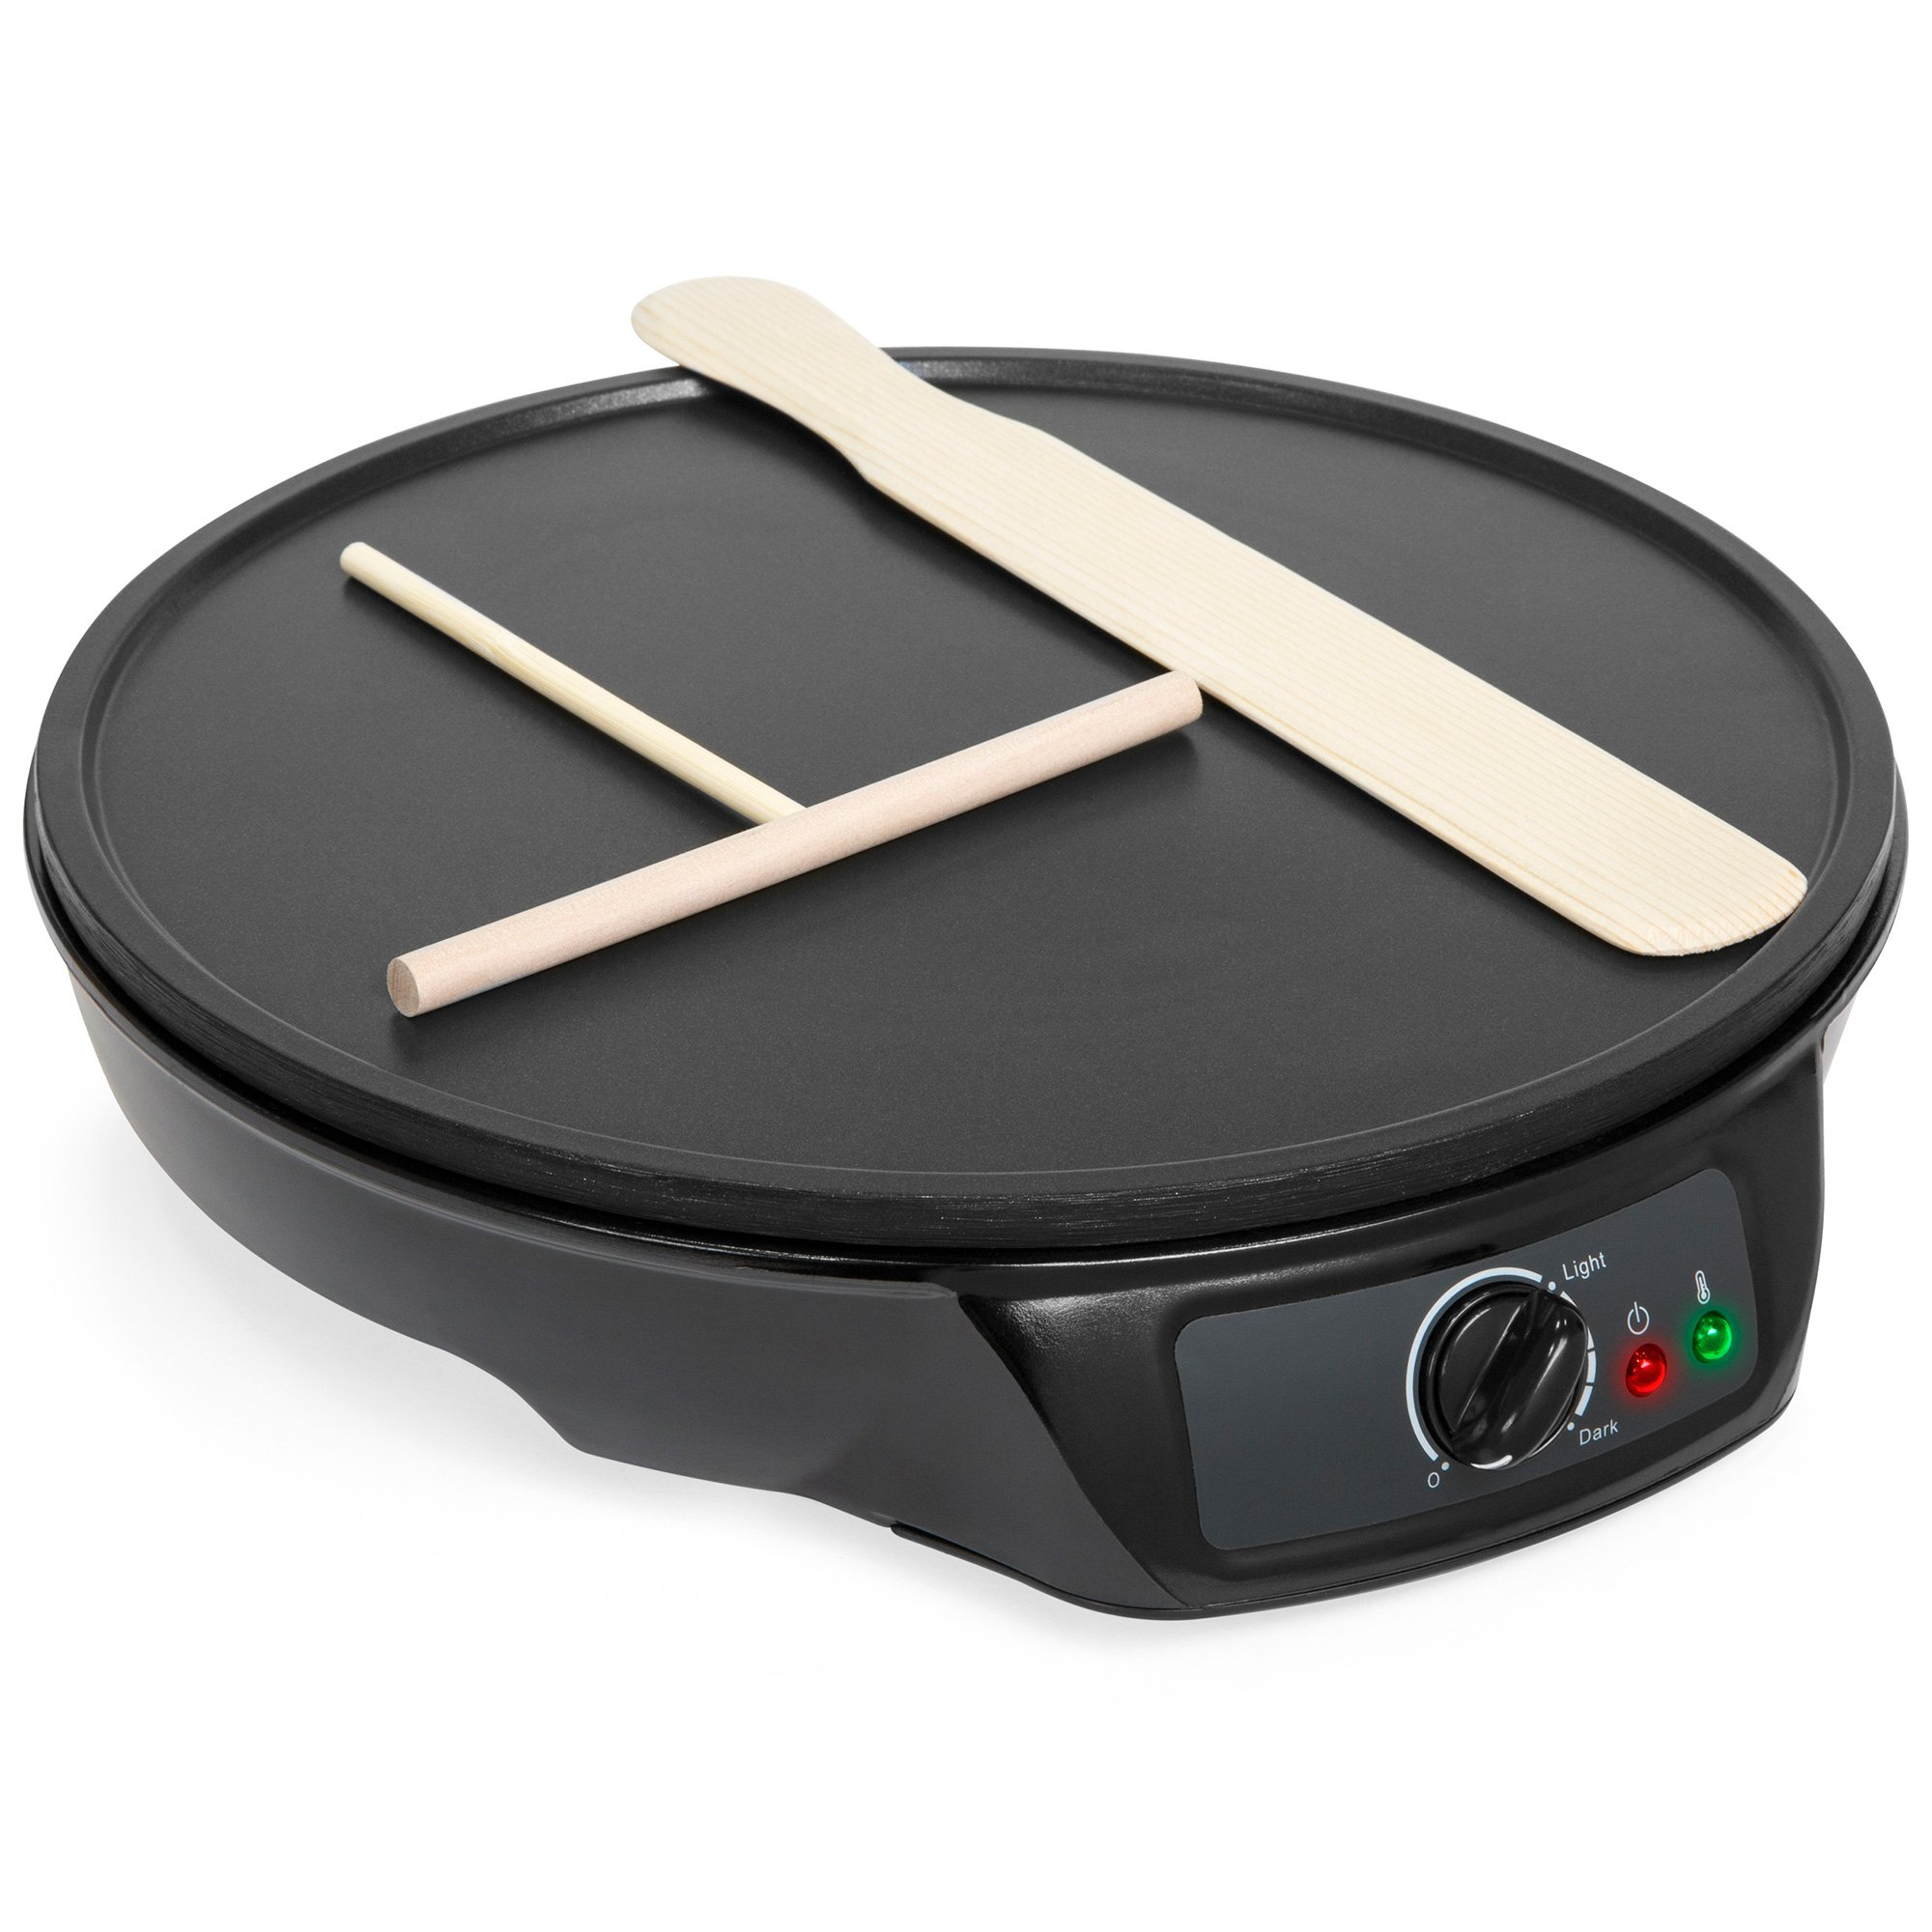 Best Choice Products Portable Non-Stick Electric Griddle Pancake Crepe Maker Pan w/Wooden Spatula, Batter Spreader, Indicator Light, 12in, Black by Best Choice Products